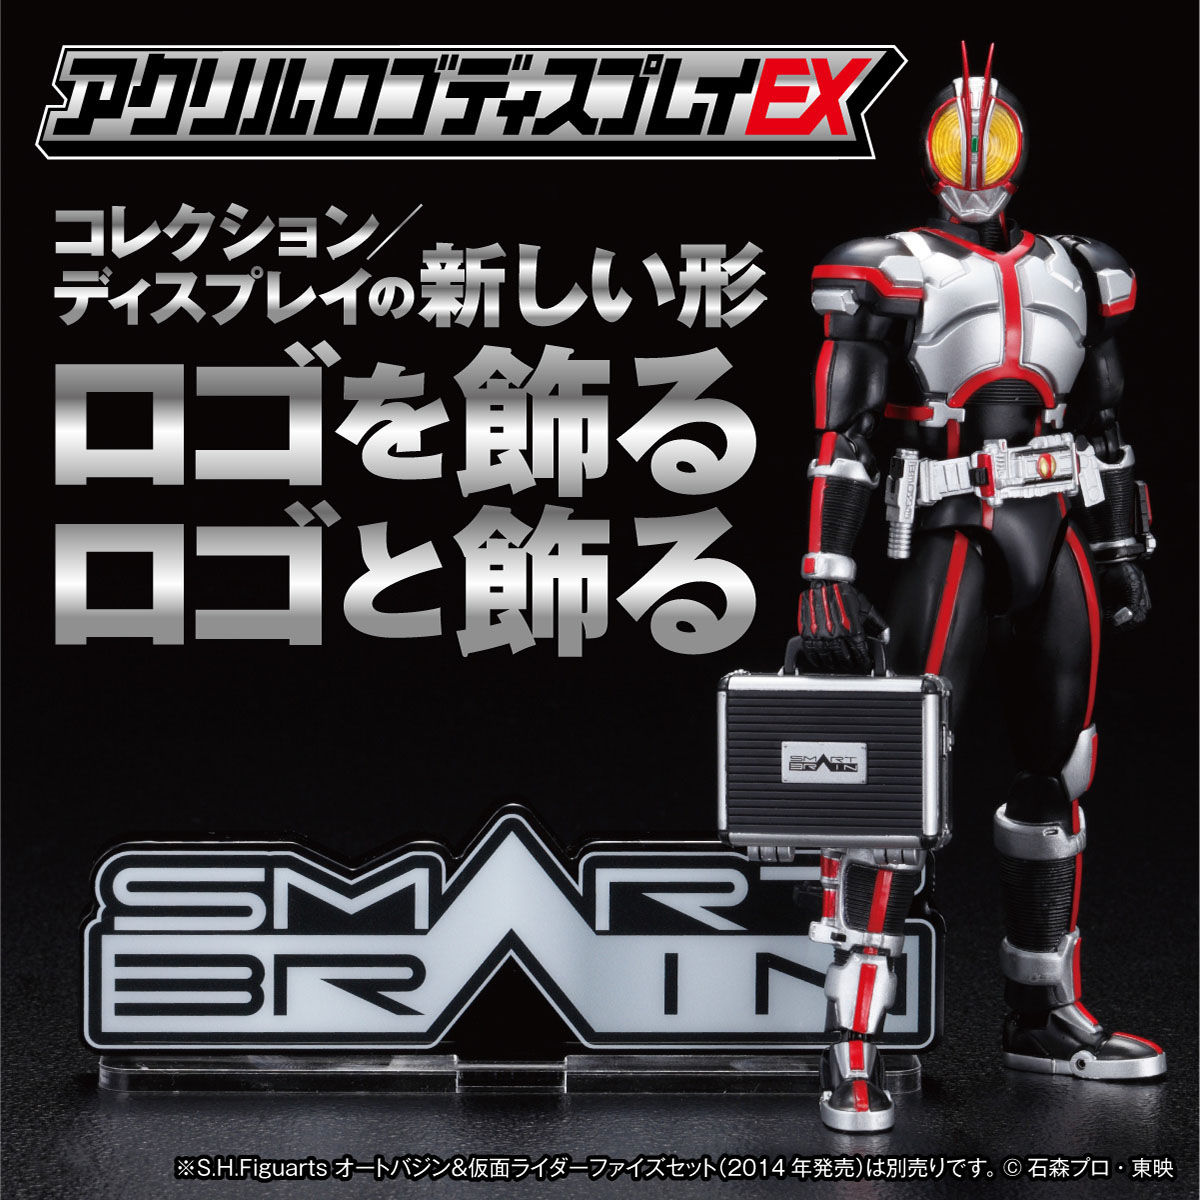 Acrylic Logo Display EX Kamen Rider 555 Smart Brain